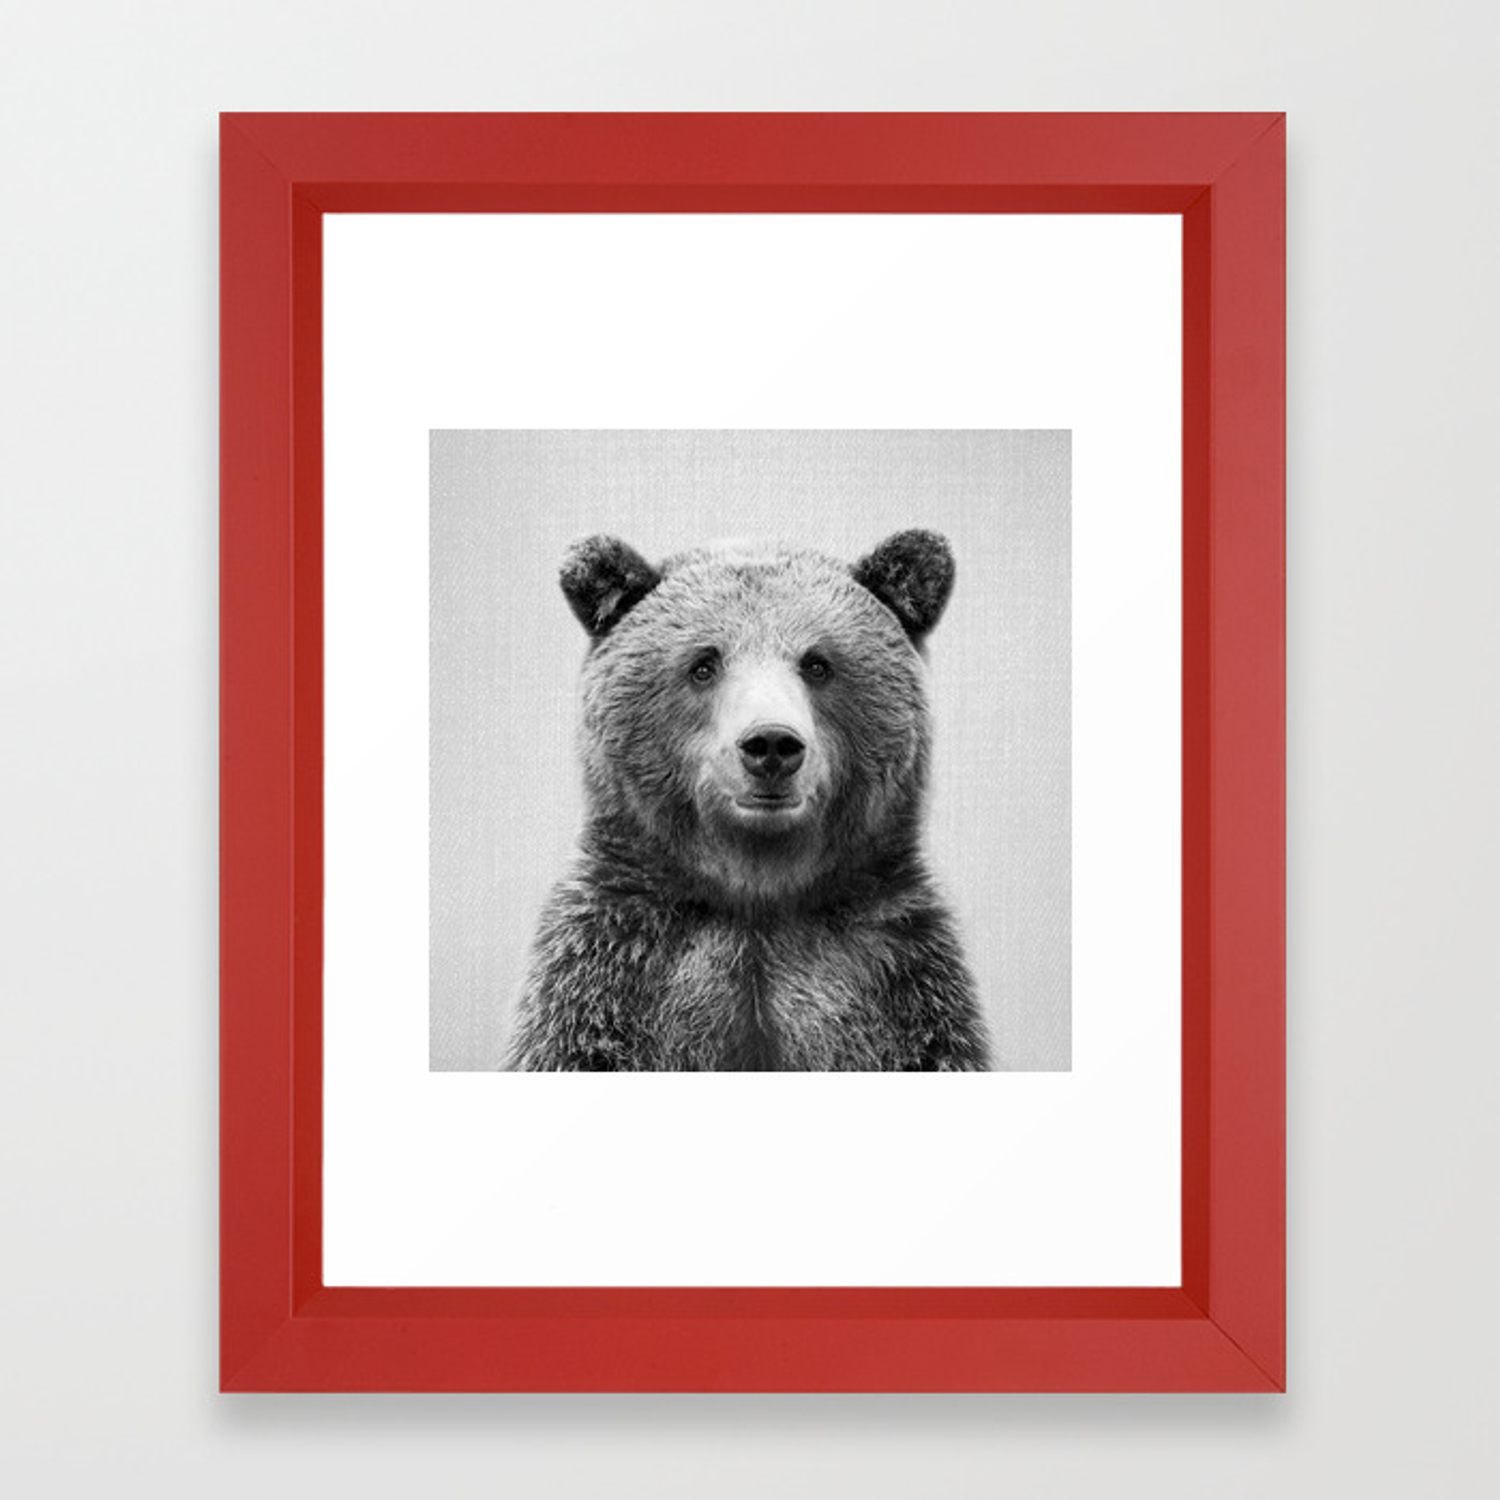 GRIZZLY BEAR WALL ART CANVAS PRINT PICTURE DESIGN VARIETY OF SIZES AVAILABLE